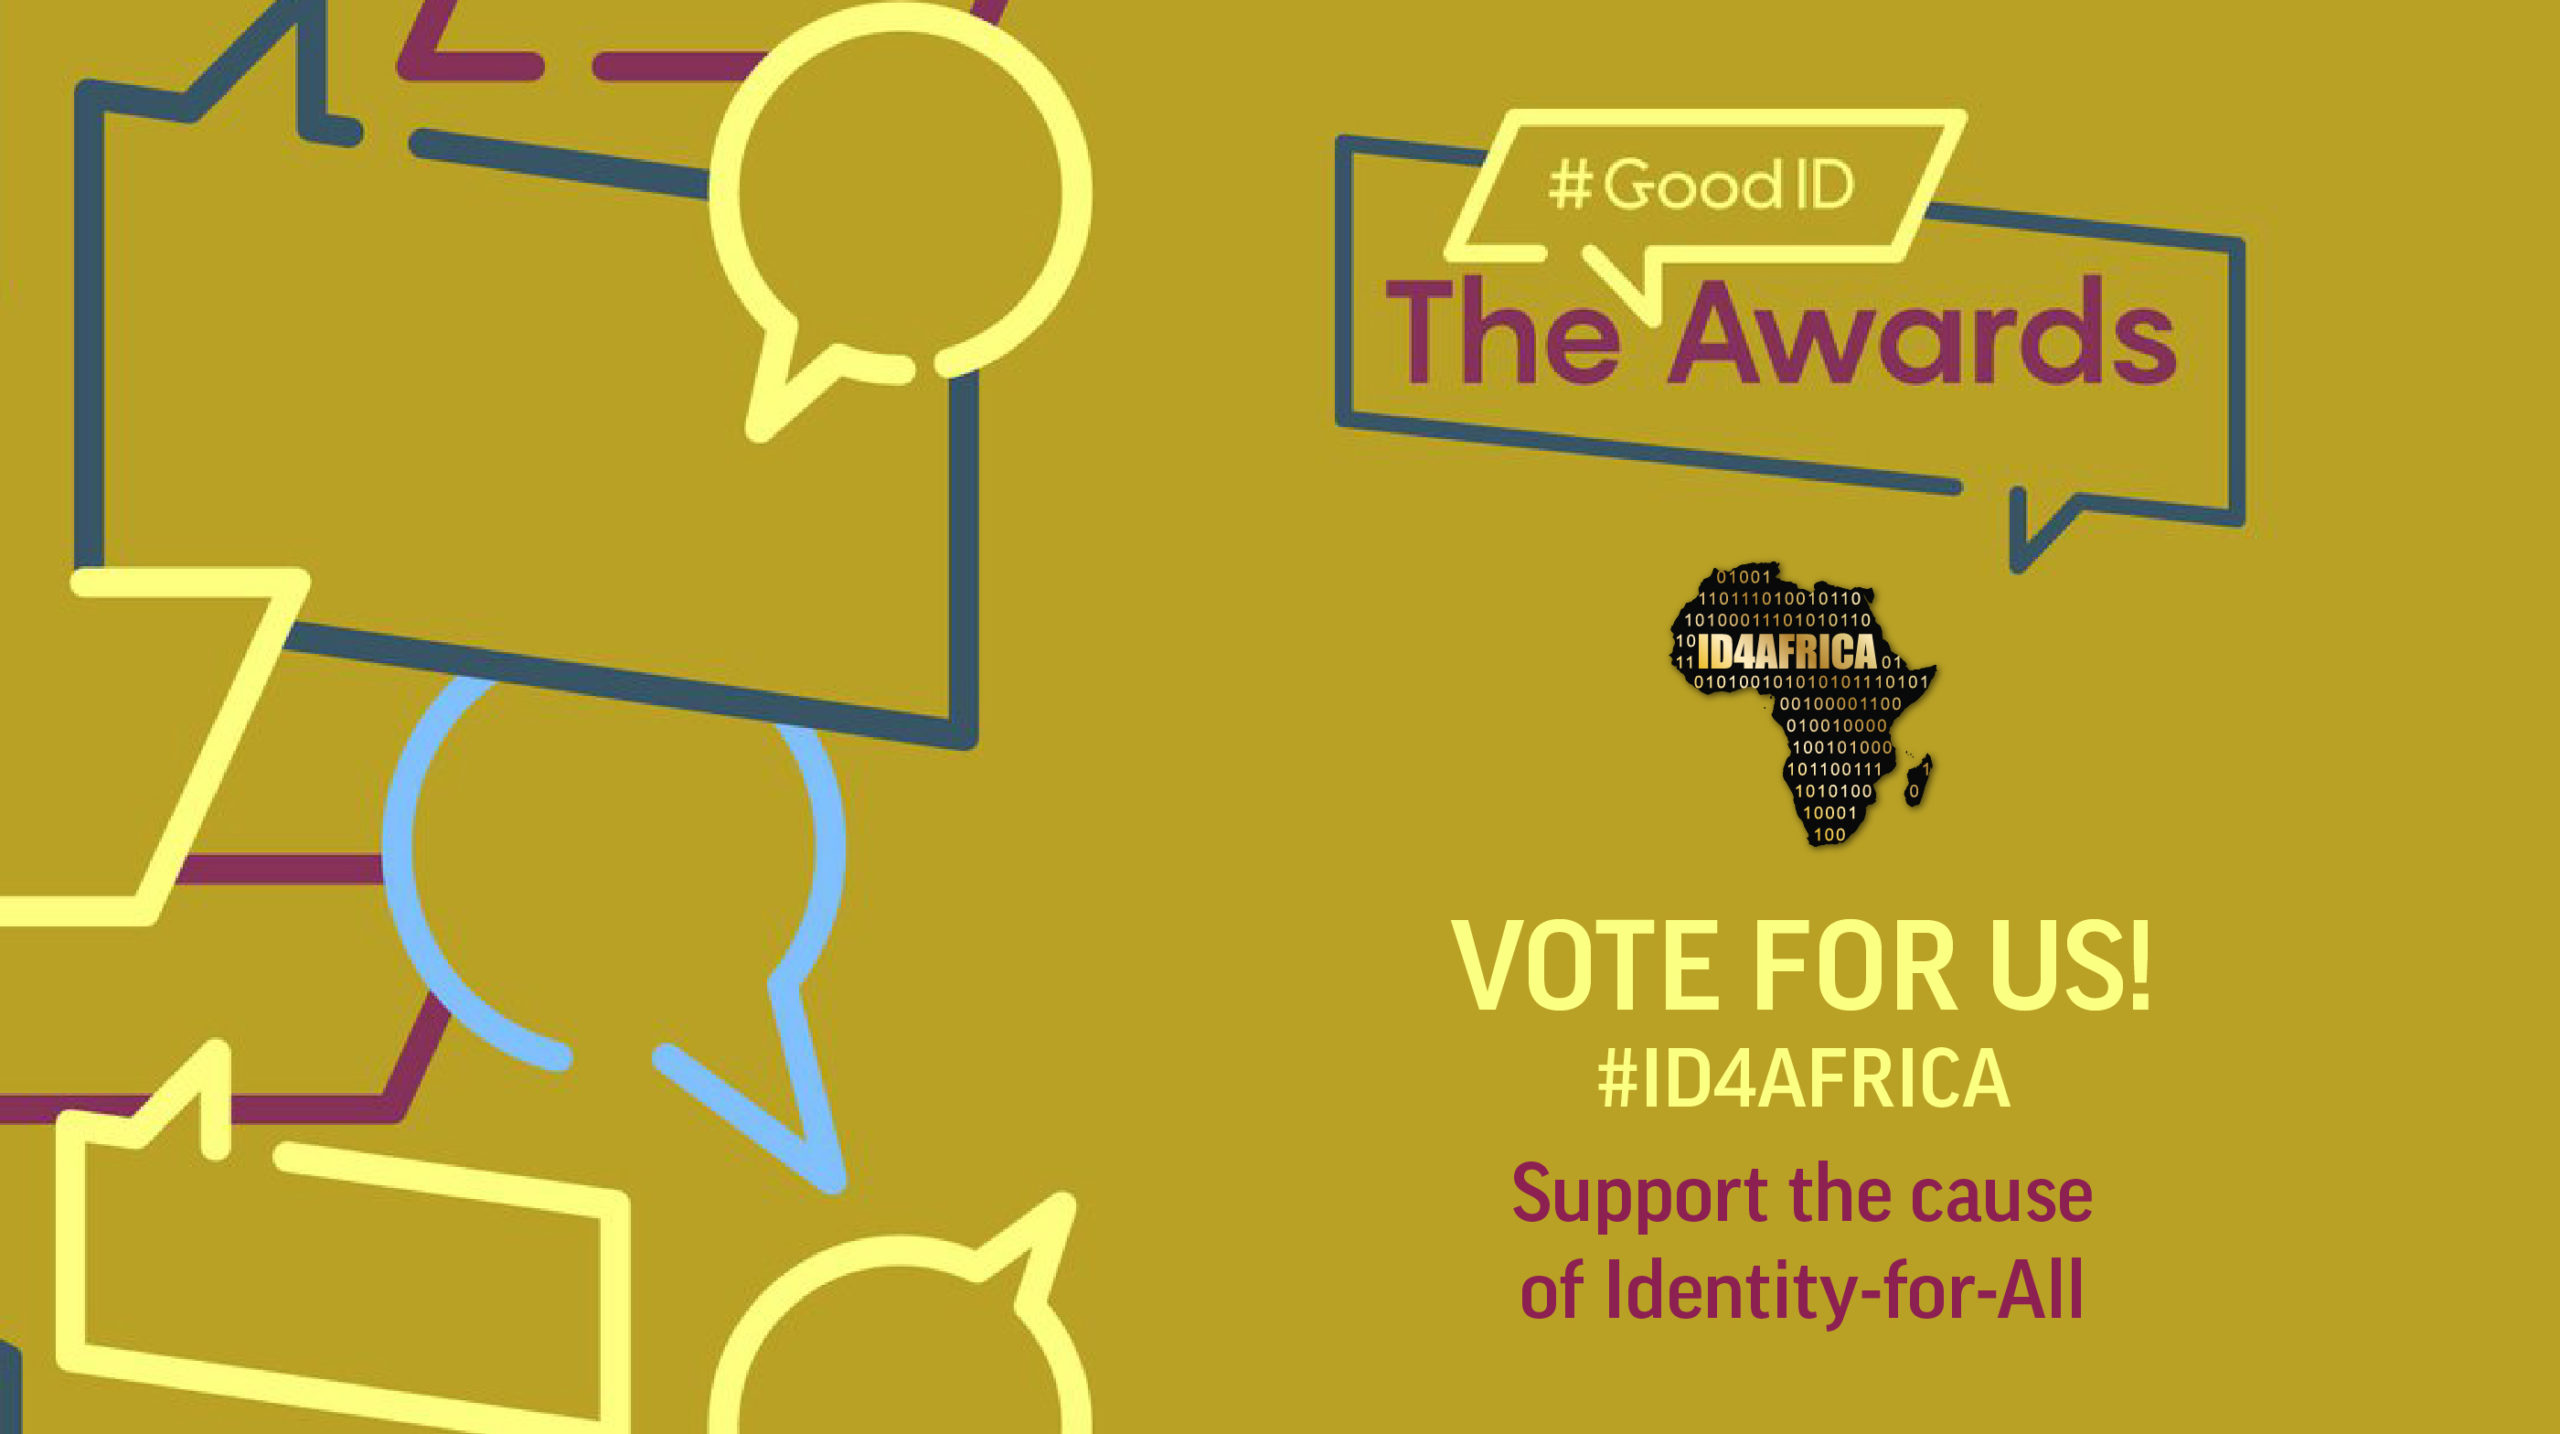 Vote for ID4Africa in the #GoodID Awards at https://www.good-id.org/en/awards/2021